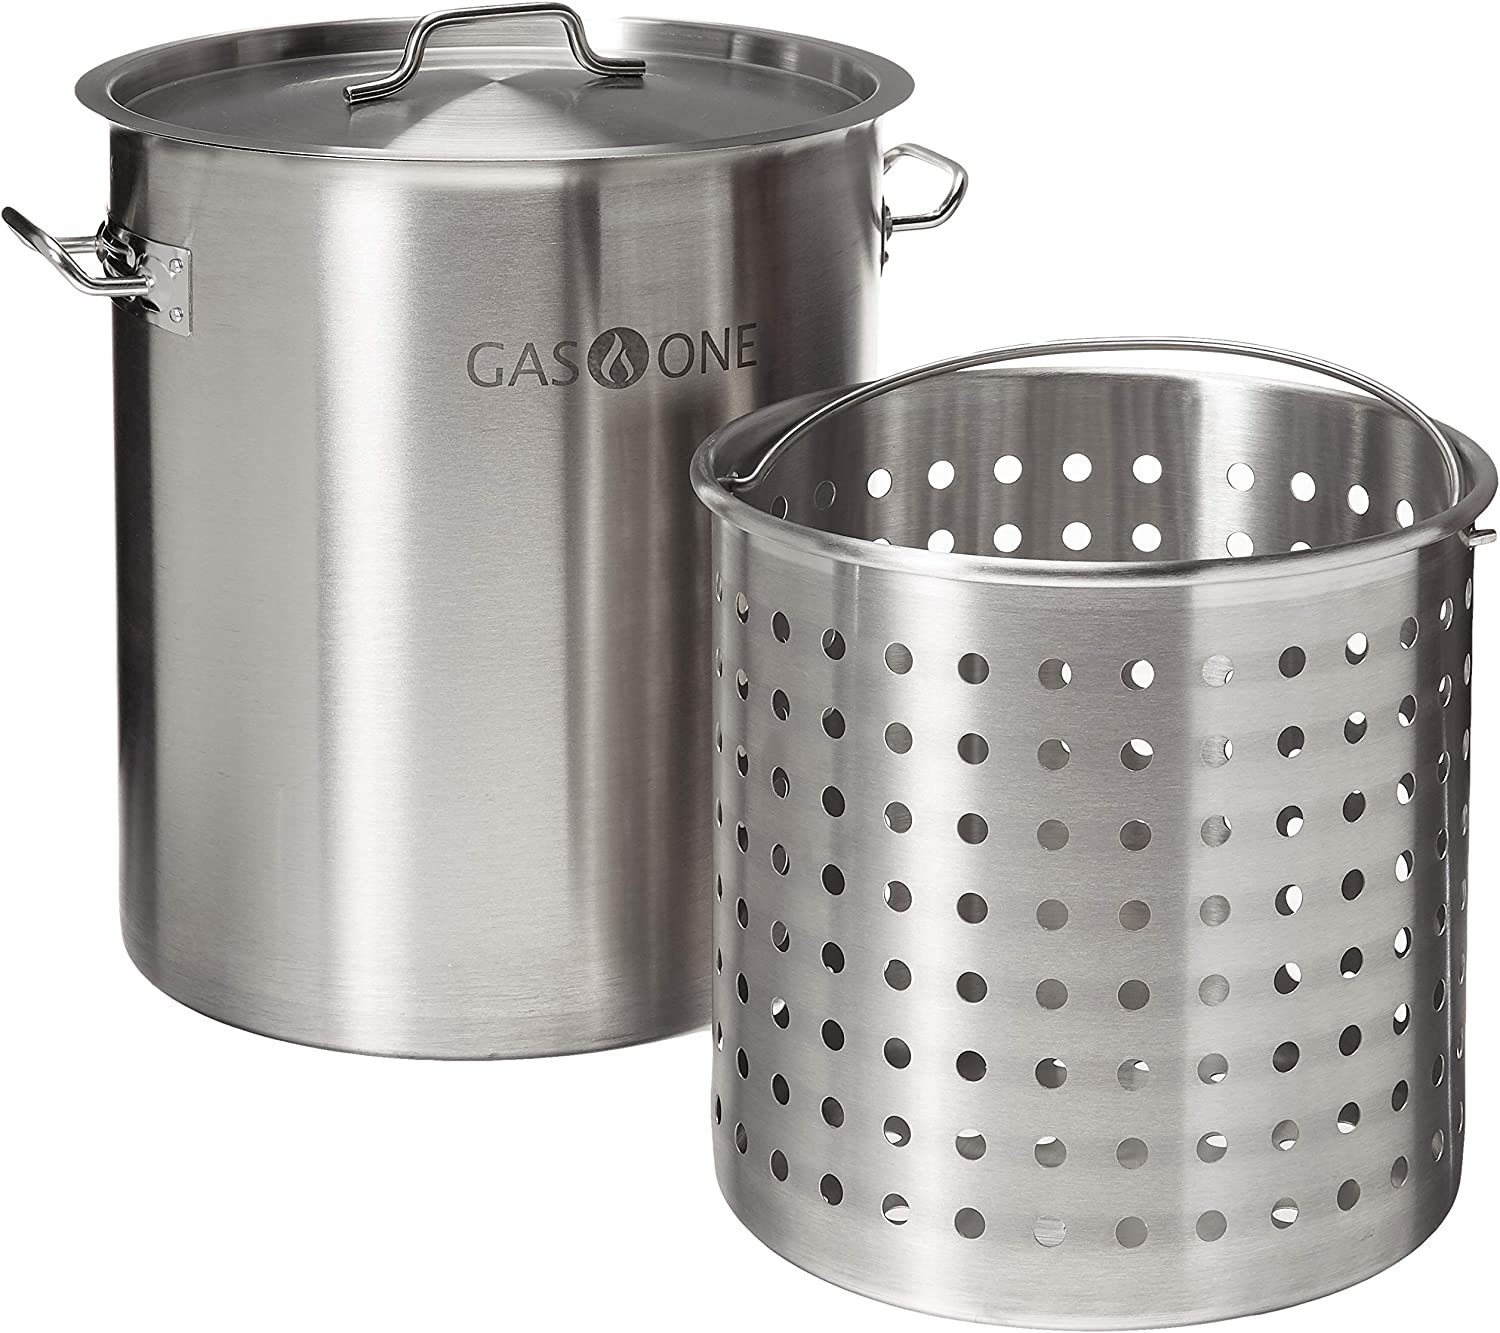 Gas One TP-32 32 QT Stainless Steel Tri Ply Bottom with All Purpose Pot Deep Fryer Steam and Boiling Basket, Quart